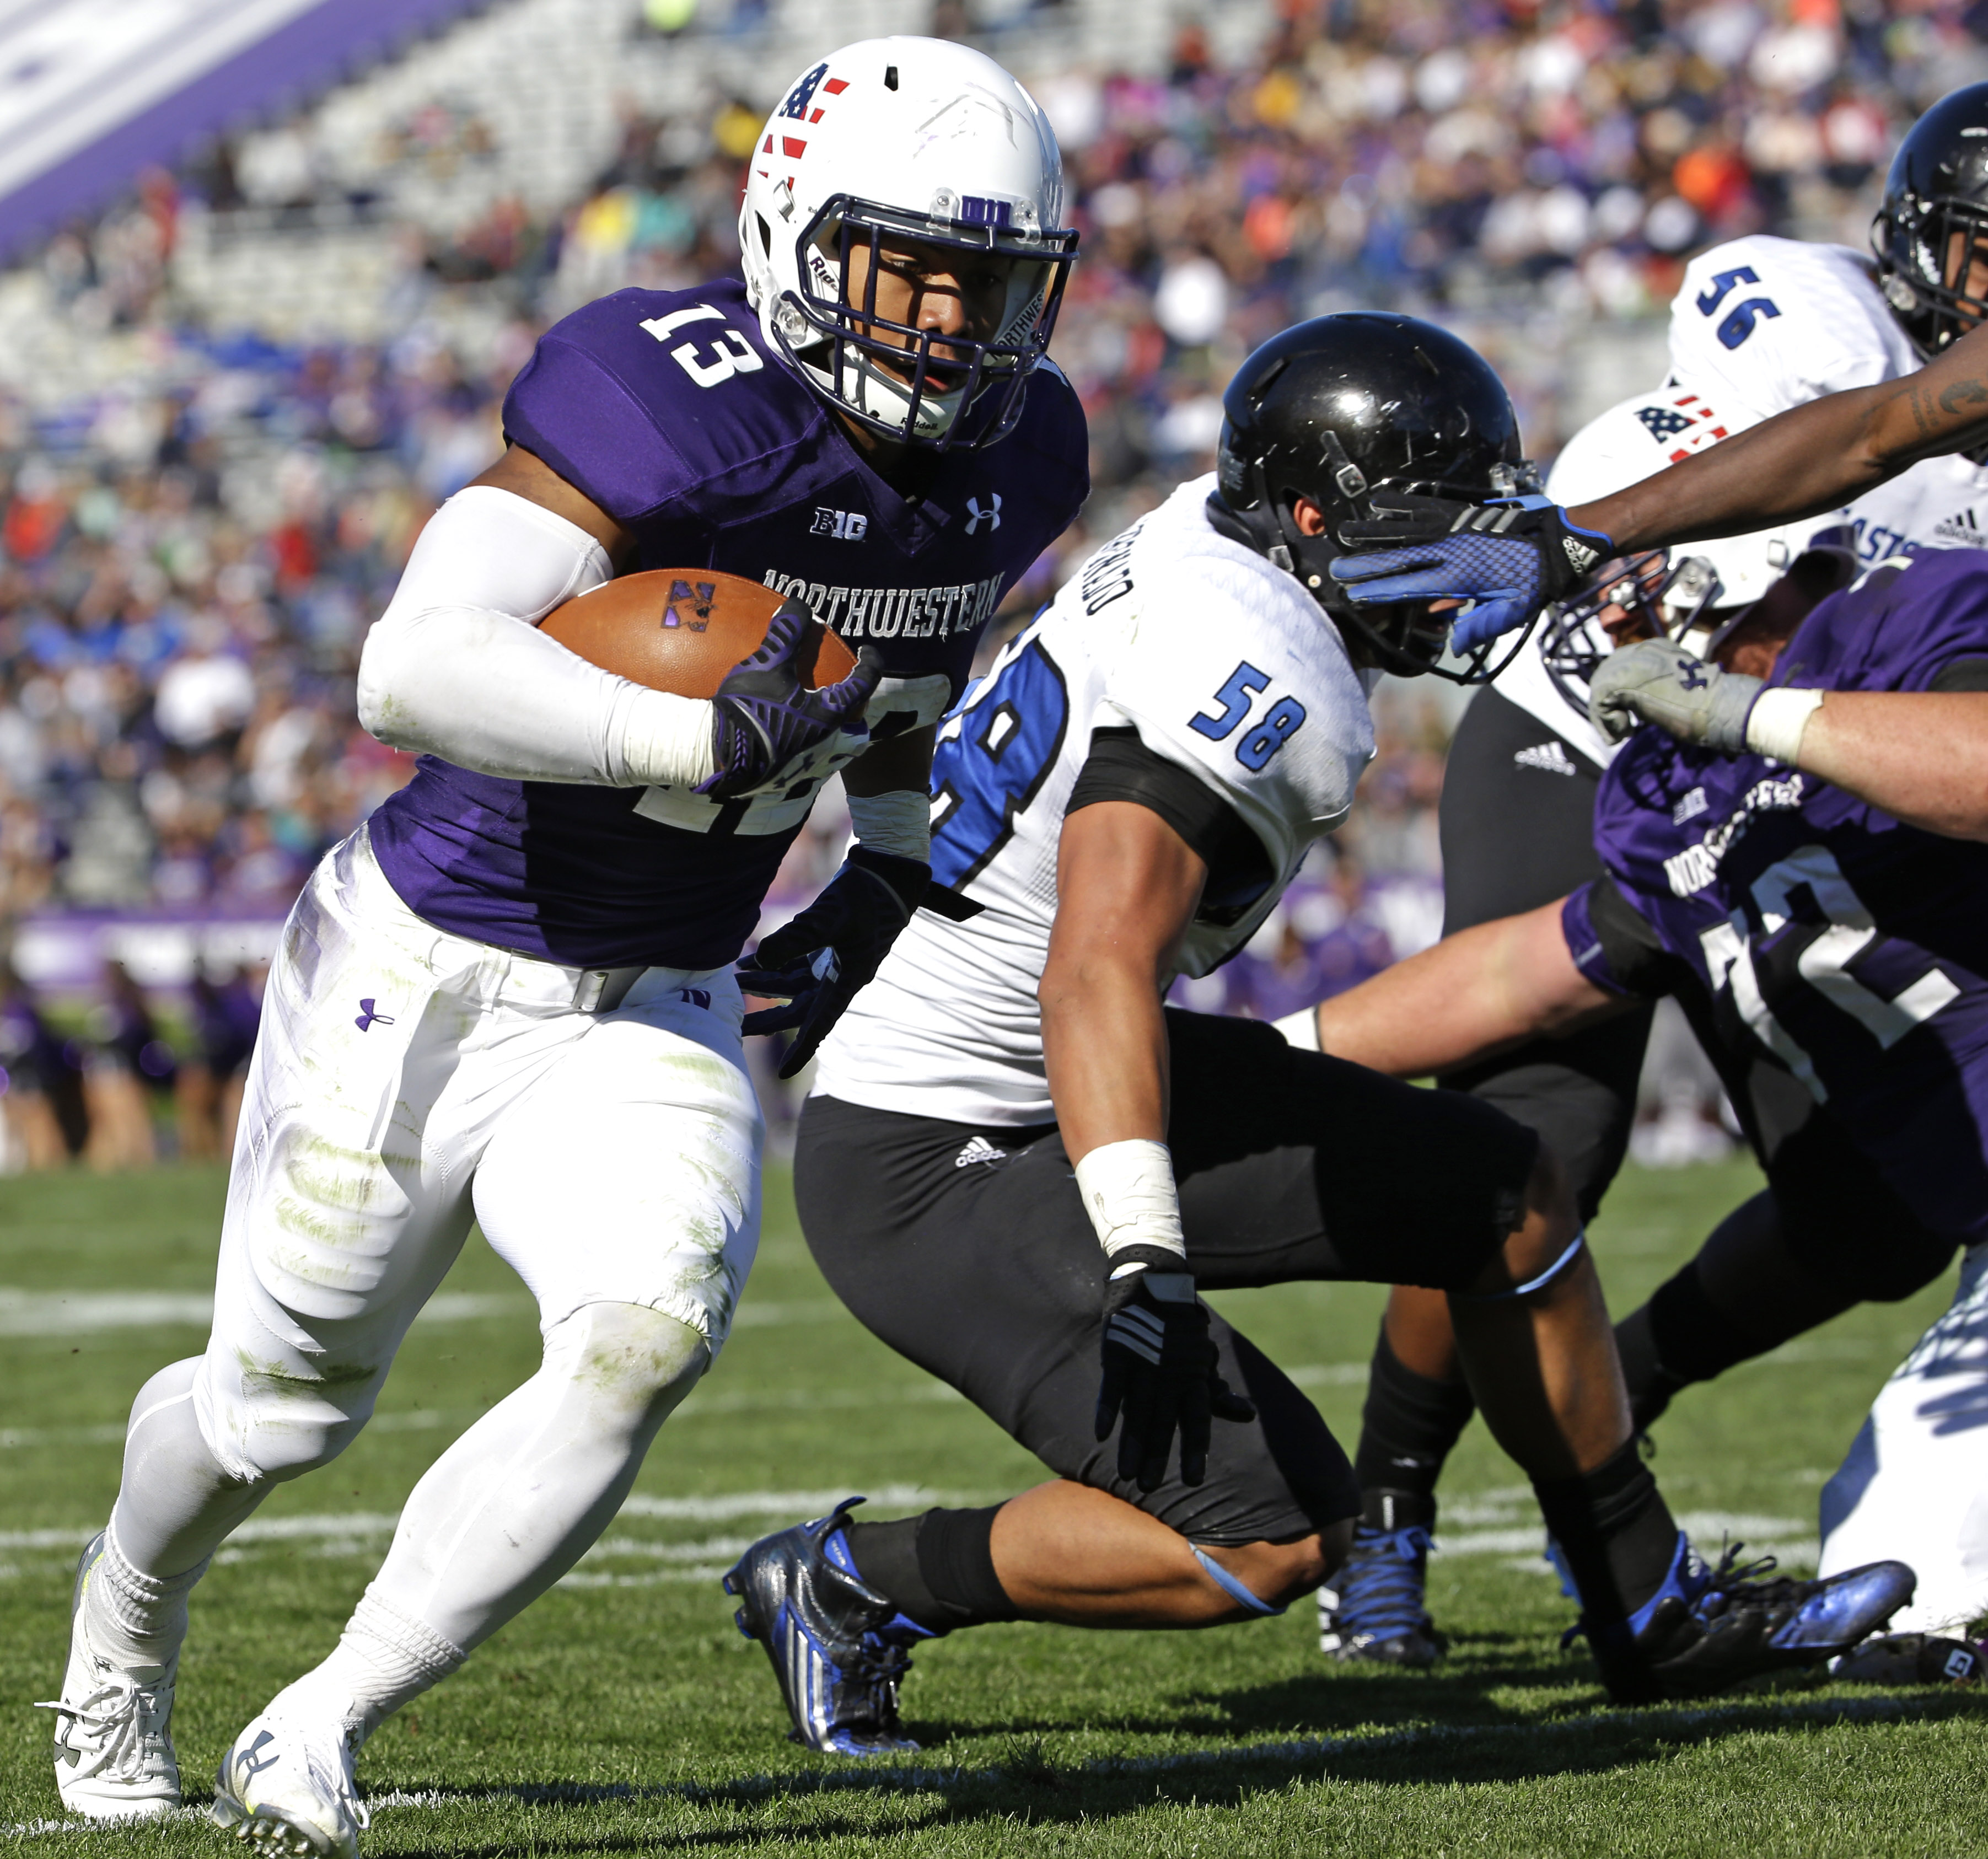 Northwestern running back Warren Long scores a touchdown during the first half of an NCAA college football game against Eastern Illinois, Saturday, Sept. 12, 2015, in Evanston, Ill. (AP Photo/Nam Y. Huh)